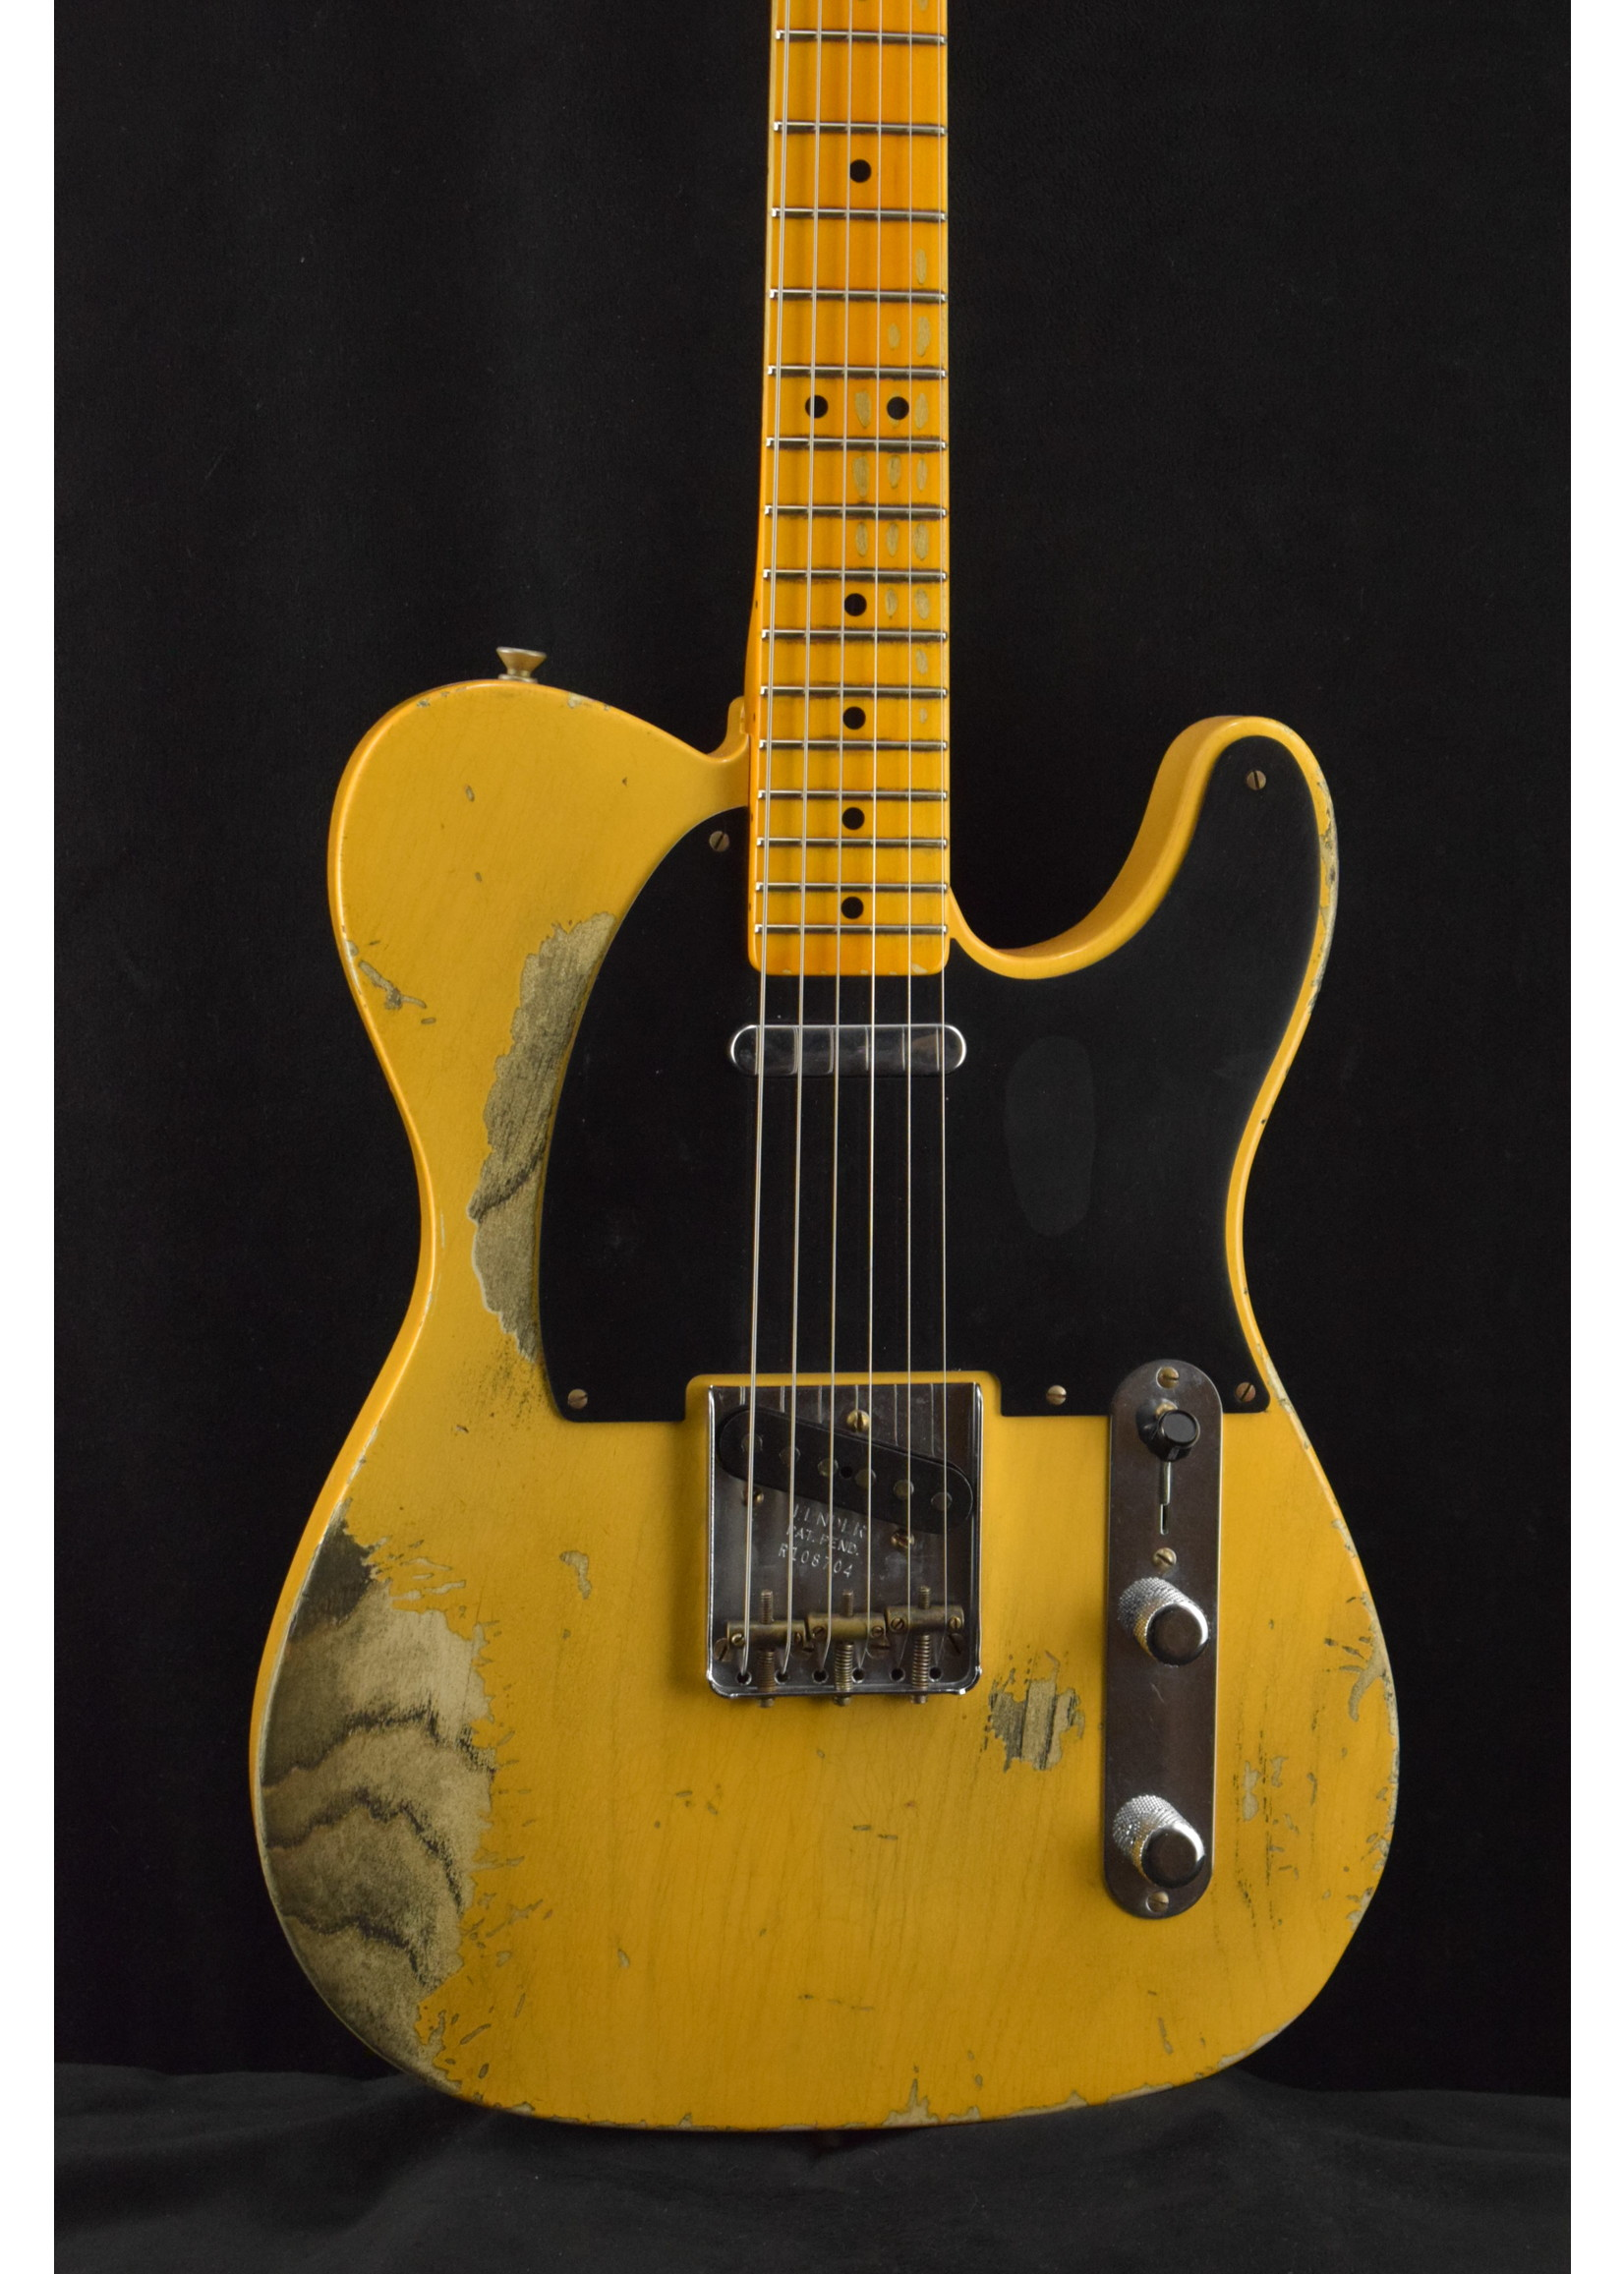 Fender Fender Custom ShopLimited Edition 70th Anniversary Broadcaster Heavy Relic Aged Nocaster Blonde